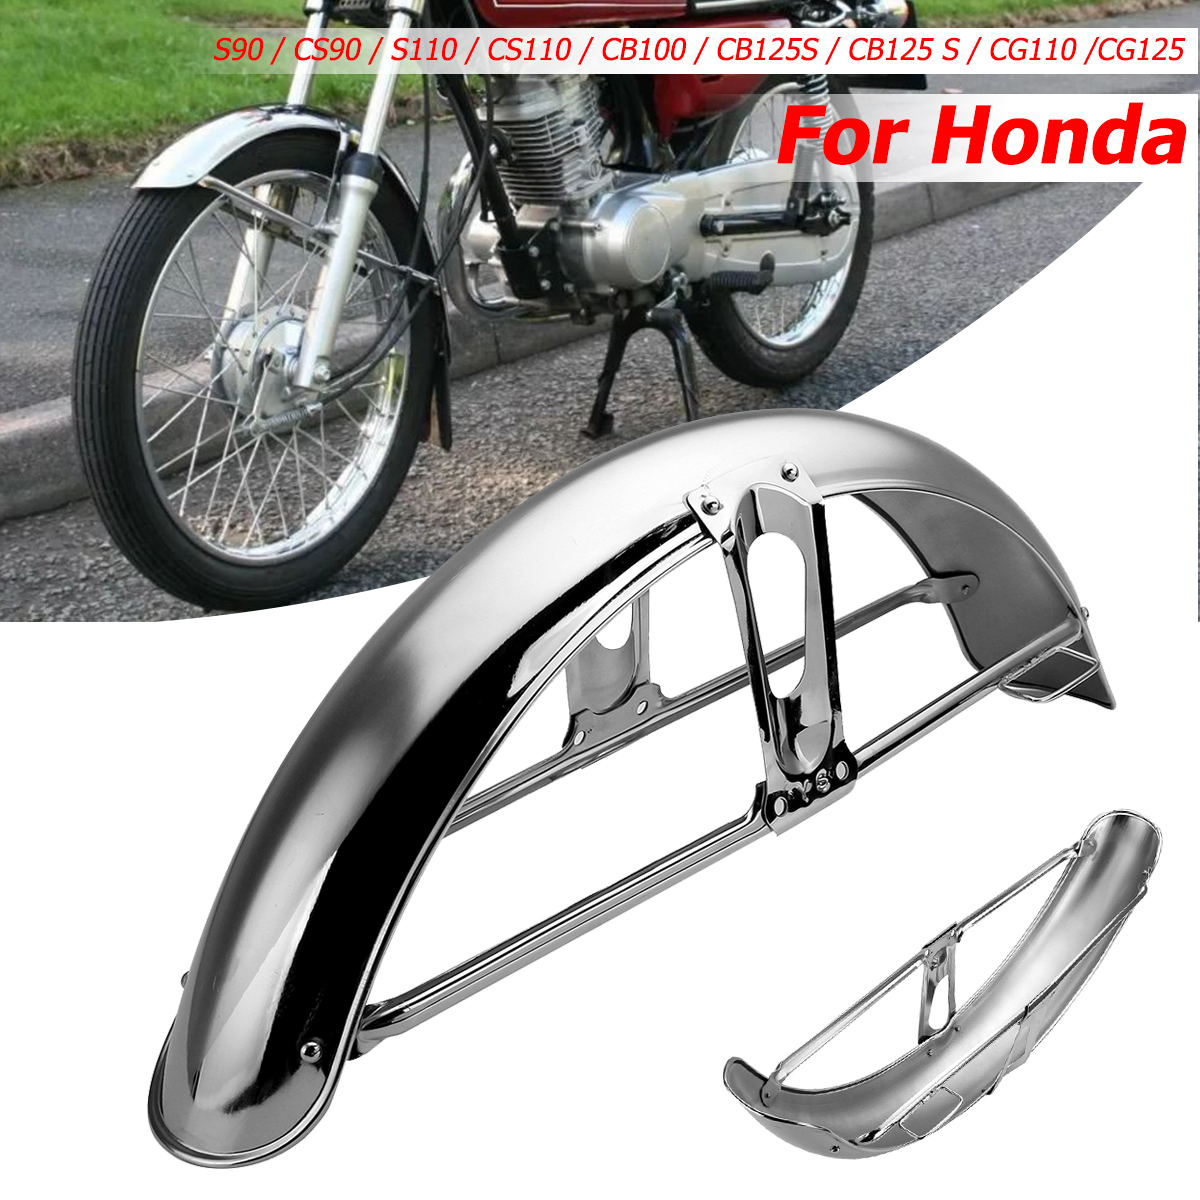 купить Motorcycle Front Fender Mud Flap Mudguard Splash Guard Mudflap For Honda S90/CS90/S110/CS110/CB100 по цене 1987.57 рублей